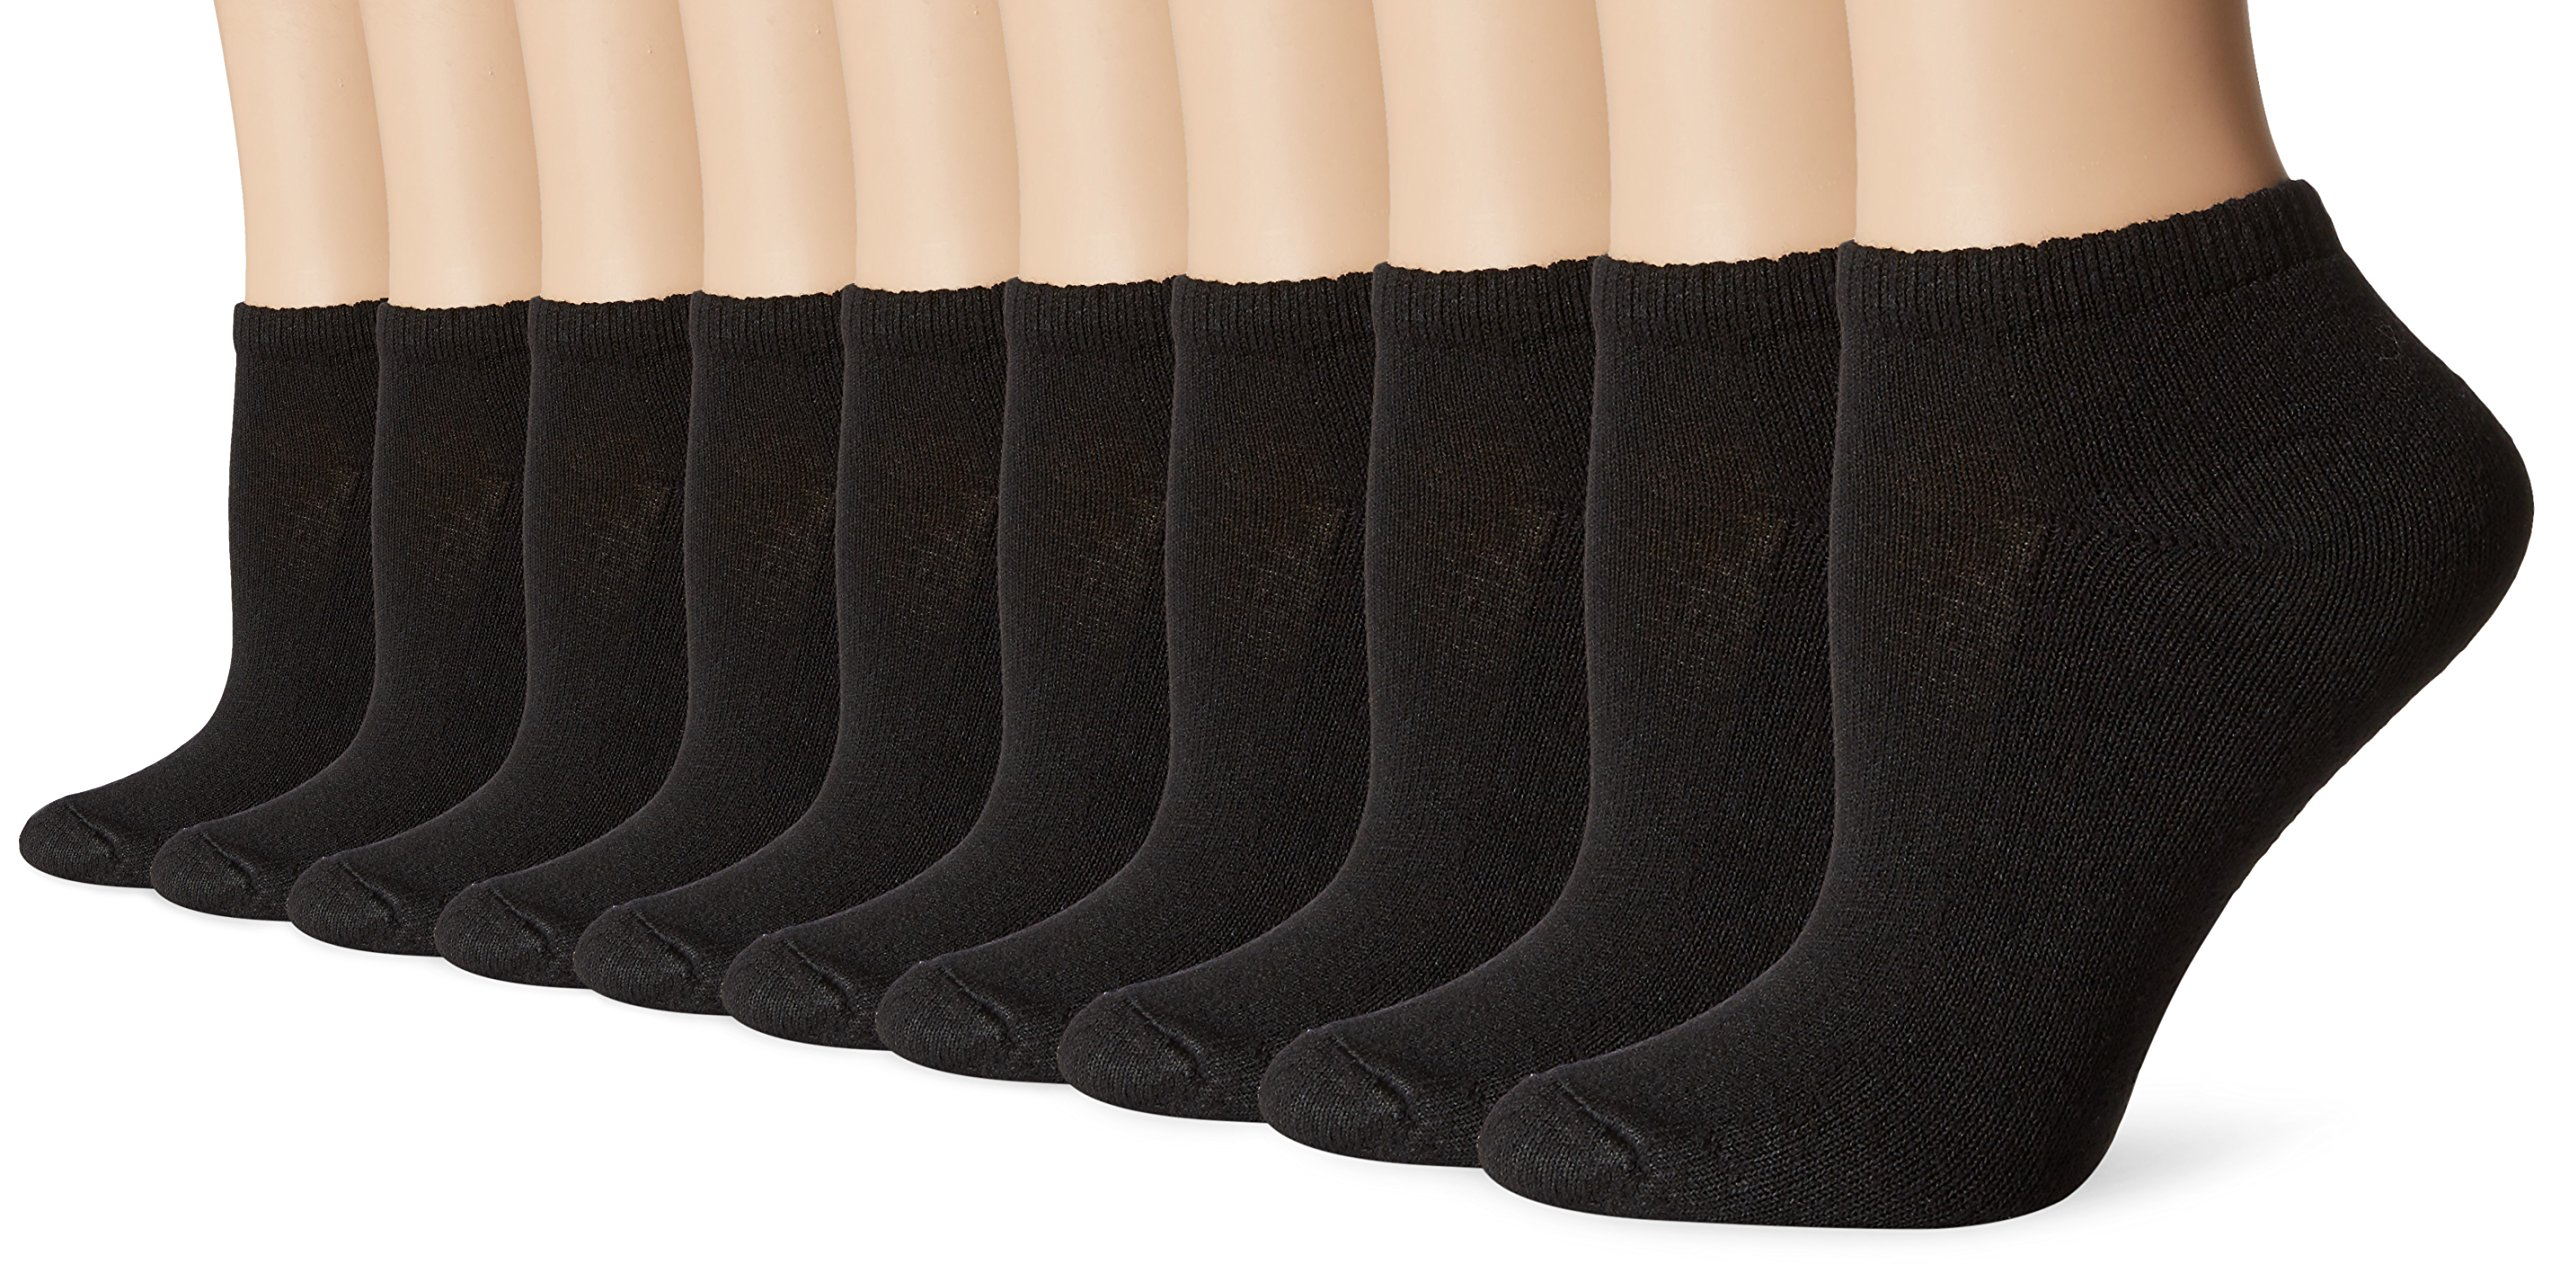 Hanes Women's Low Cut Cushioned Athletic Sock, Black, Sock Size 9-11/Shoe Size 5-9 (Pack of 10)